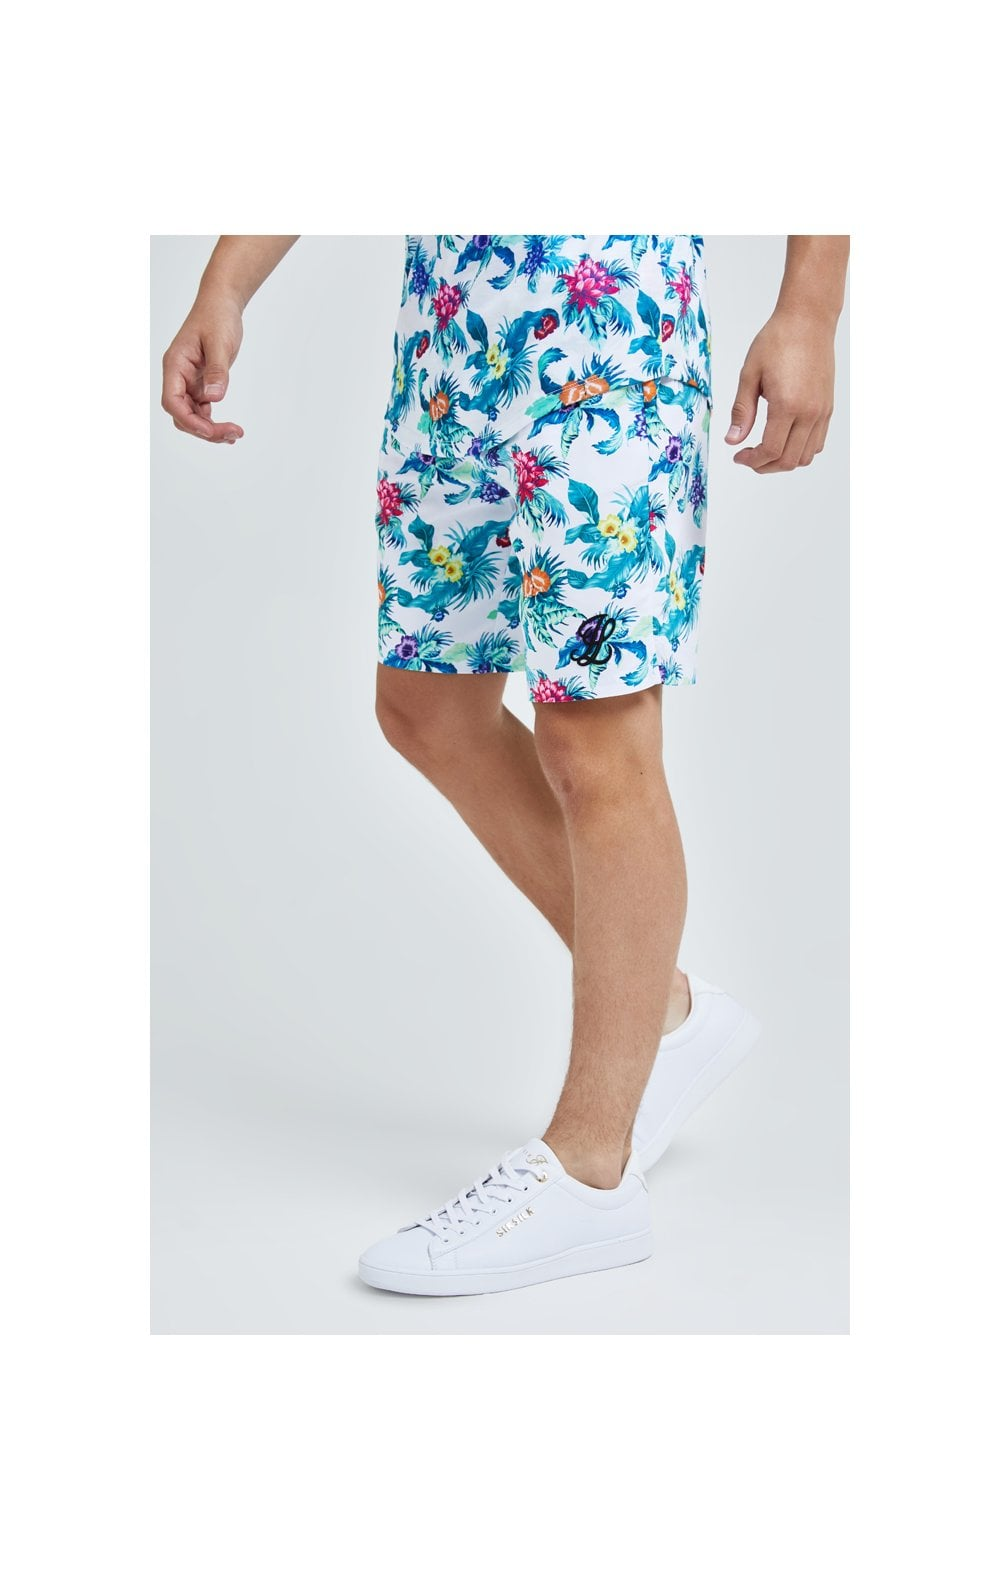 Load image into Gallery viewer, Illusive London Swim Shorts - White & Floral (1)